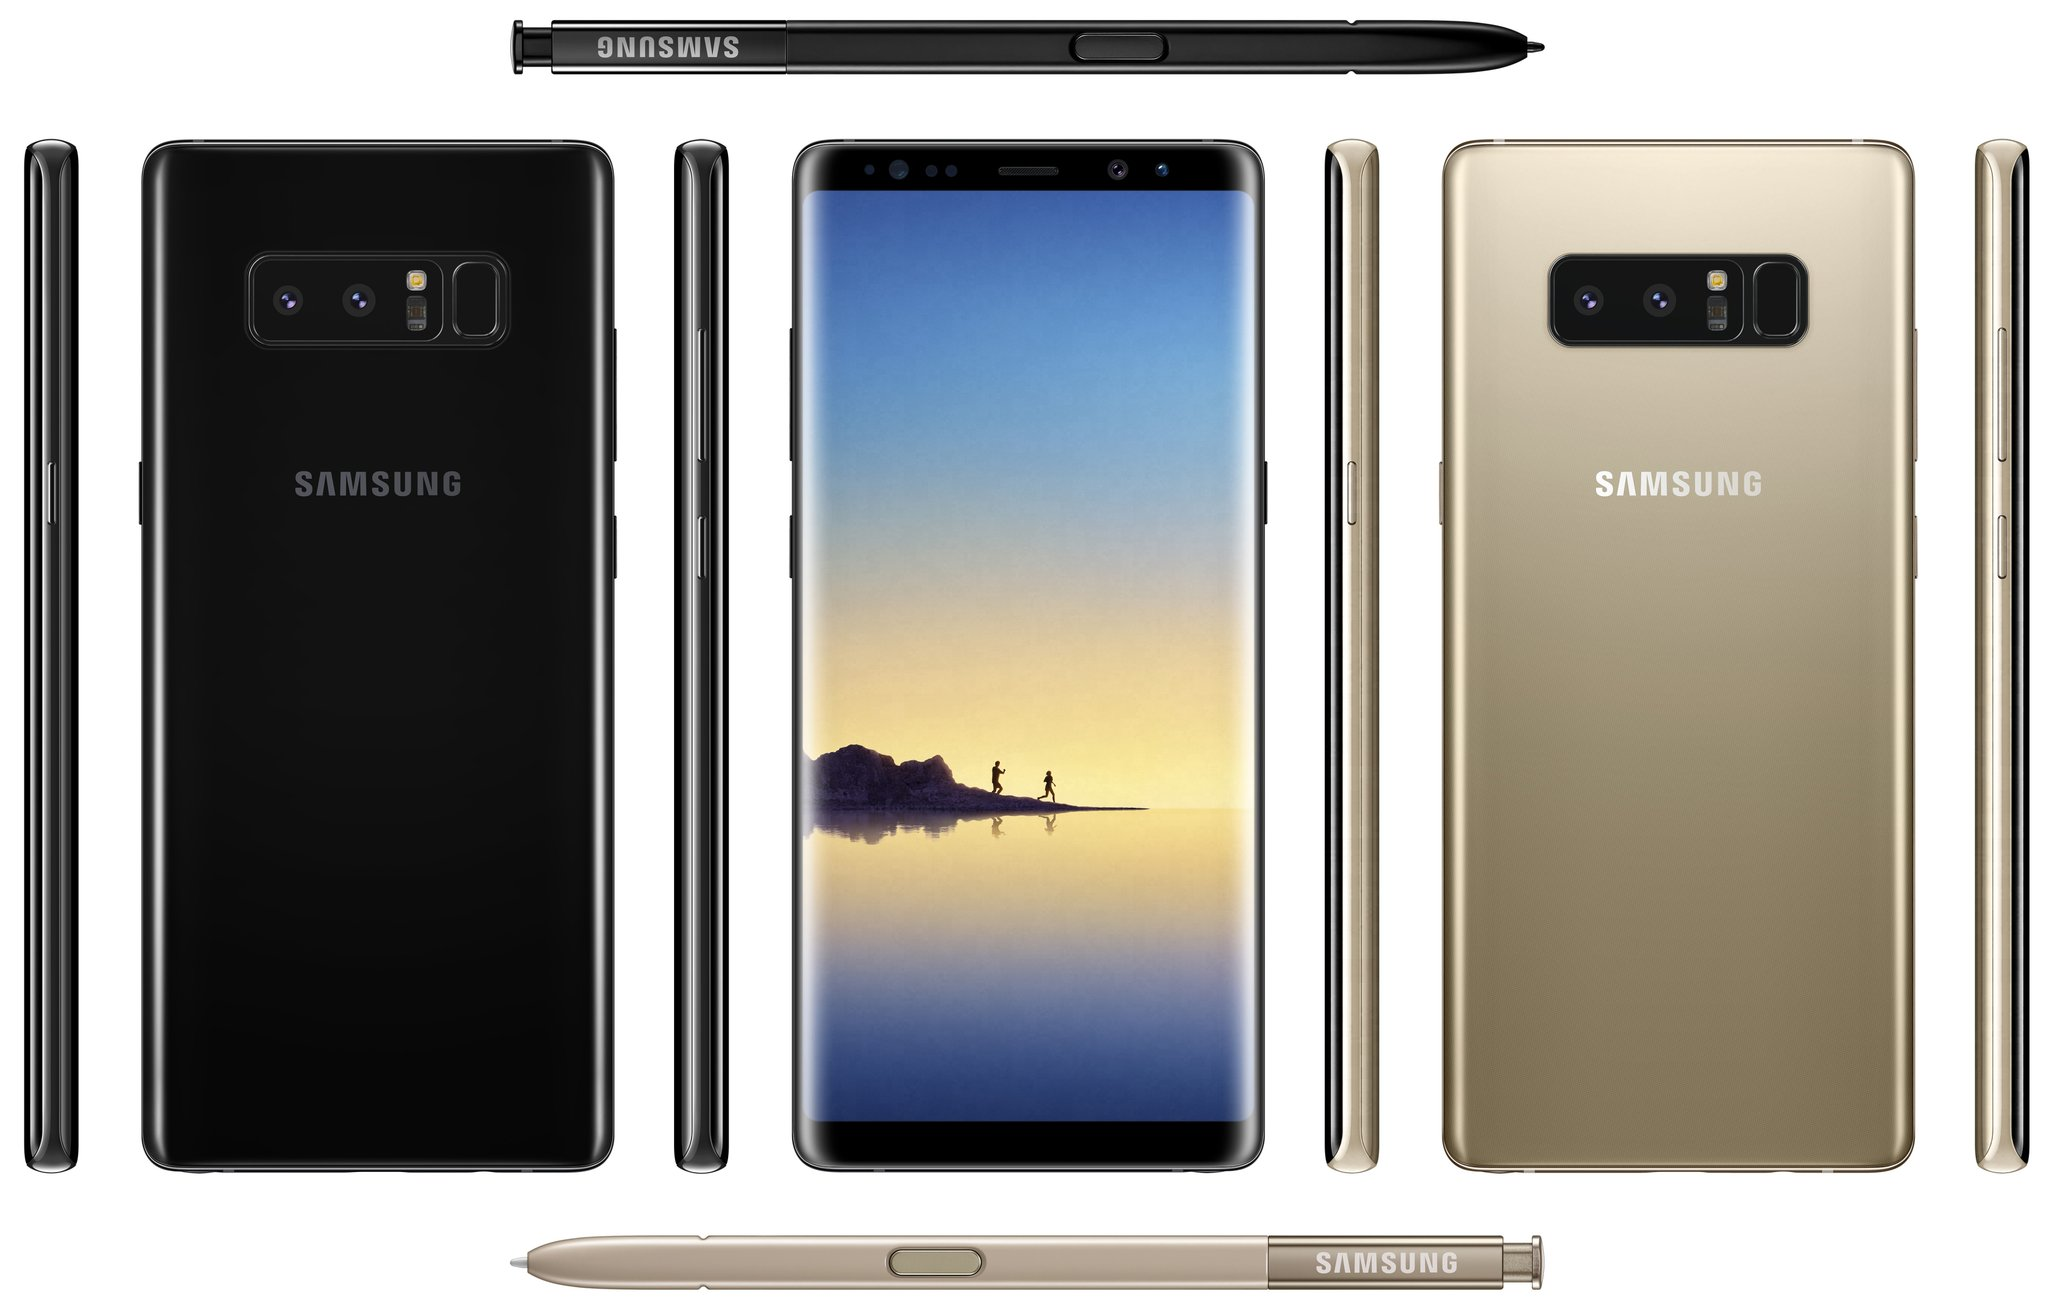 Samsung Galaxy Note8 Maple Gold ja Midnight Black. Evan Blassin aiemmin vuotama kuva.